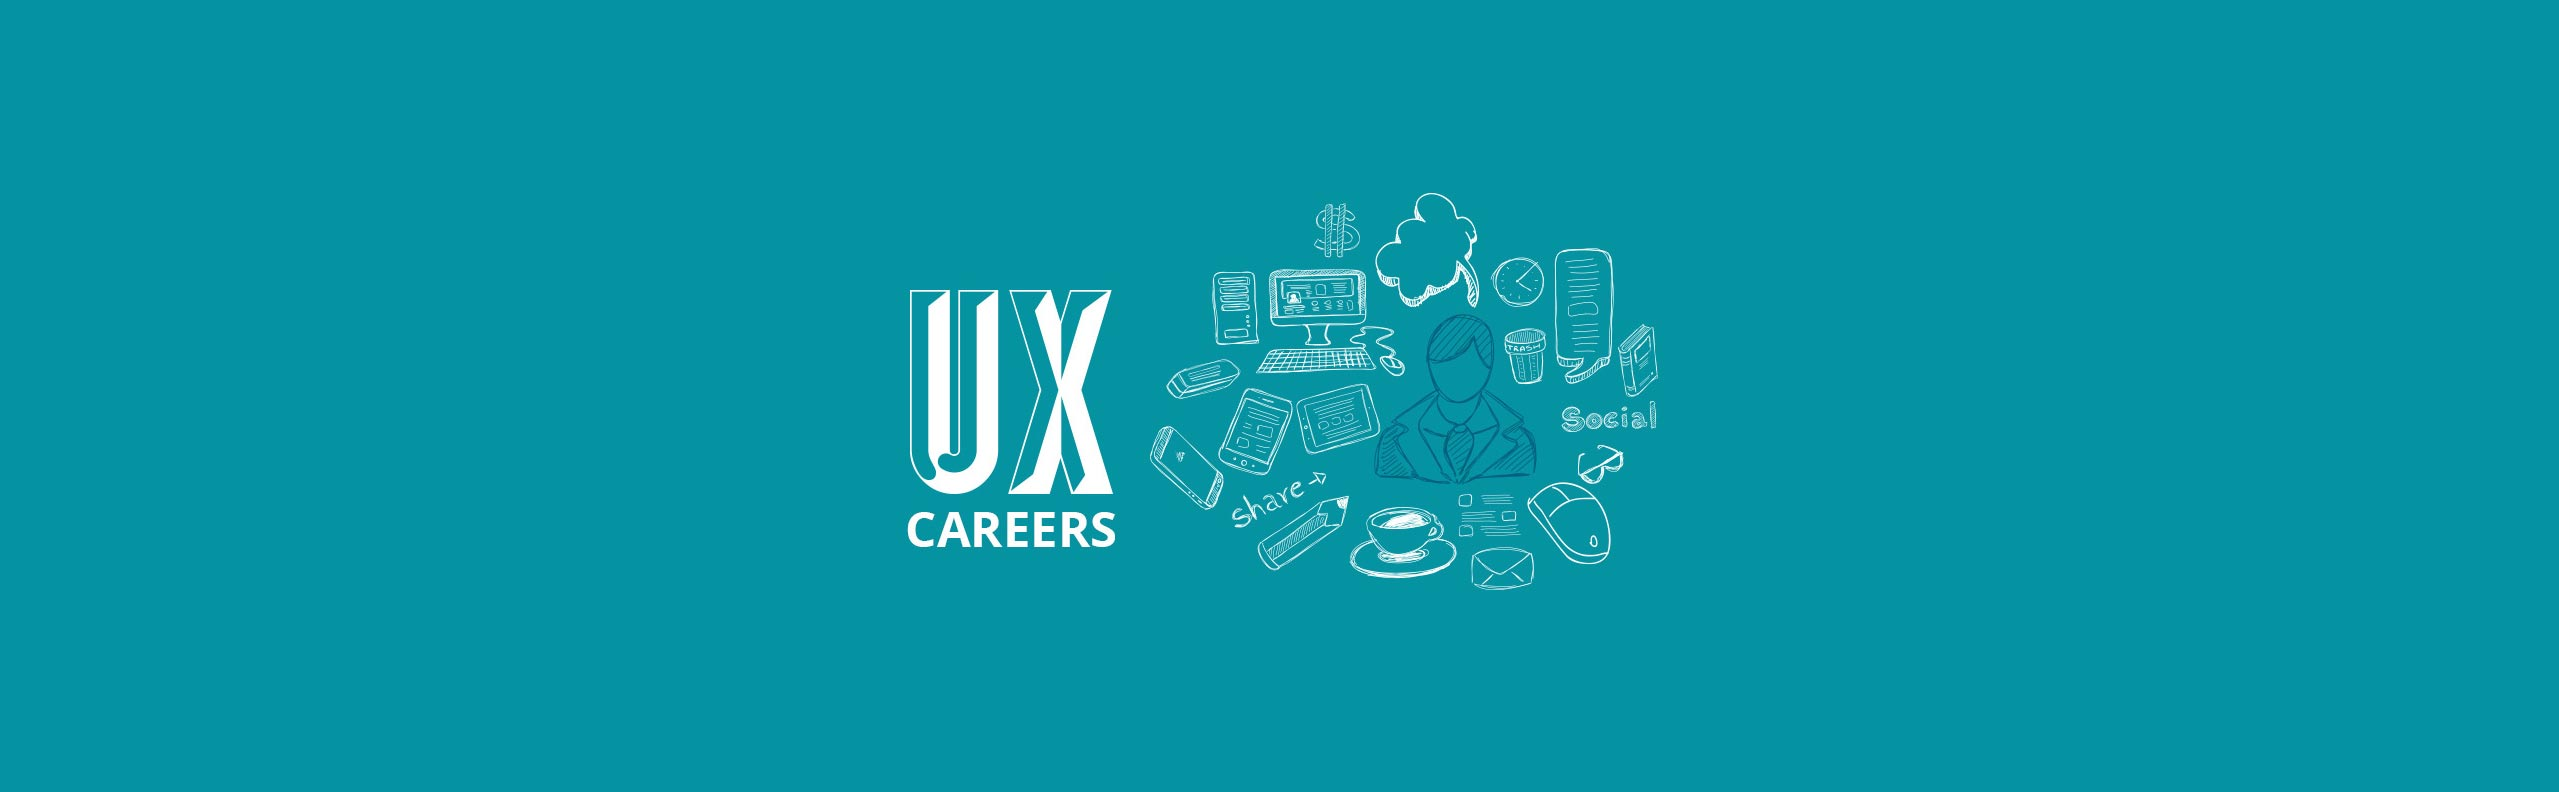 Ux Careers 101 The Guide To User Experience Careers